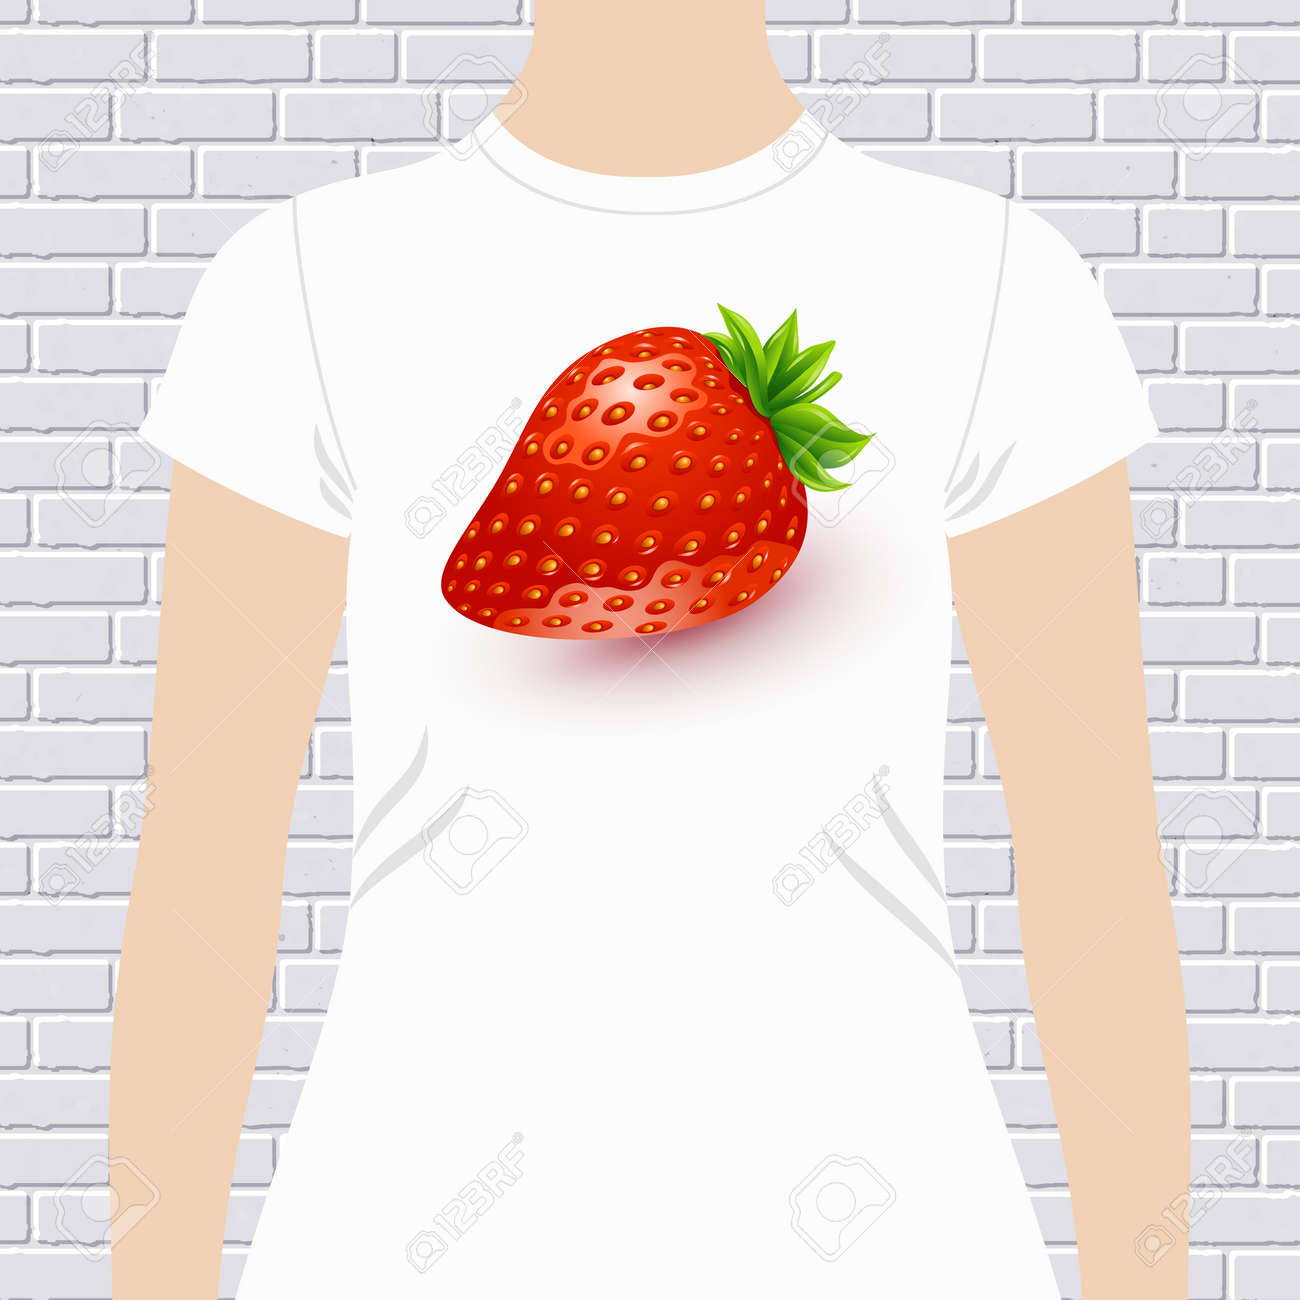 Shirt design red - Fun T Shirt Design Template With A Luscious Ripe Red Fresh Ripe Strawberry On A